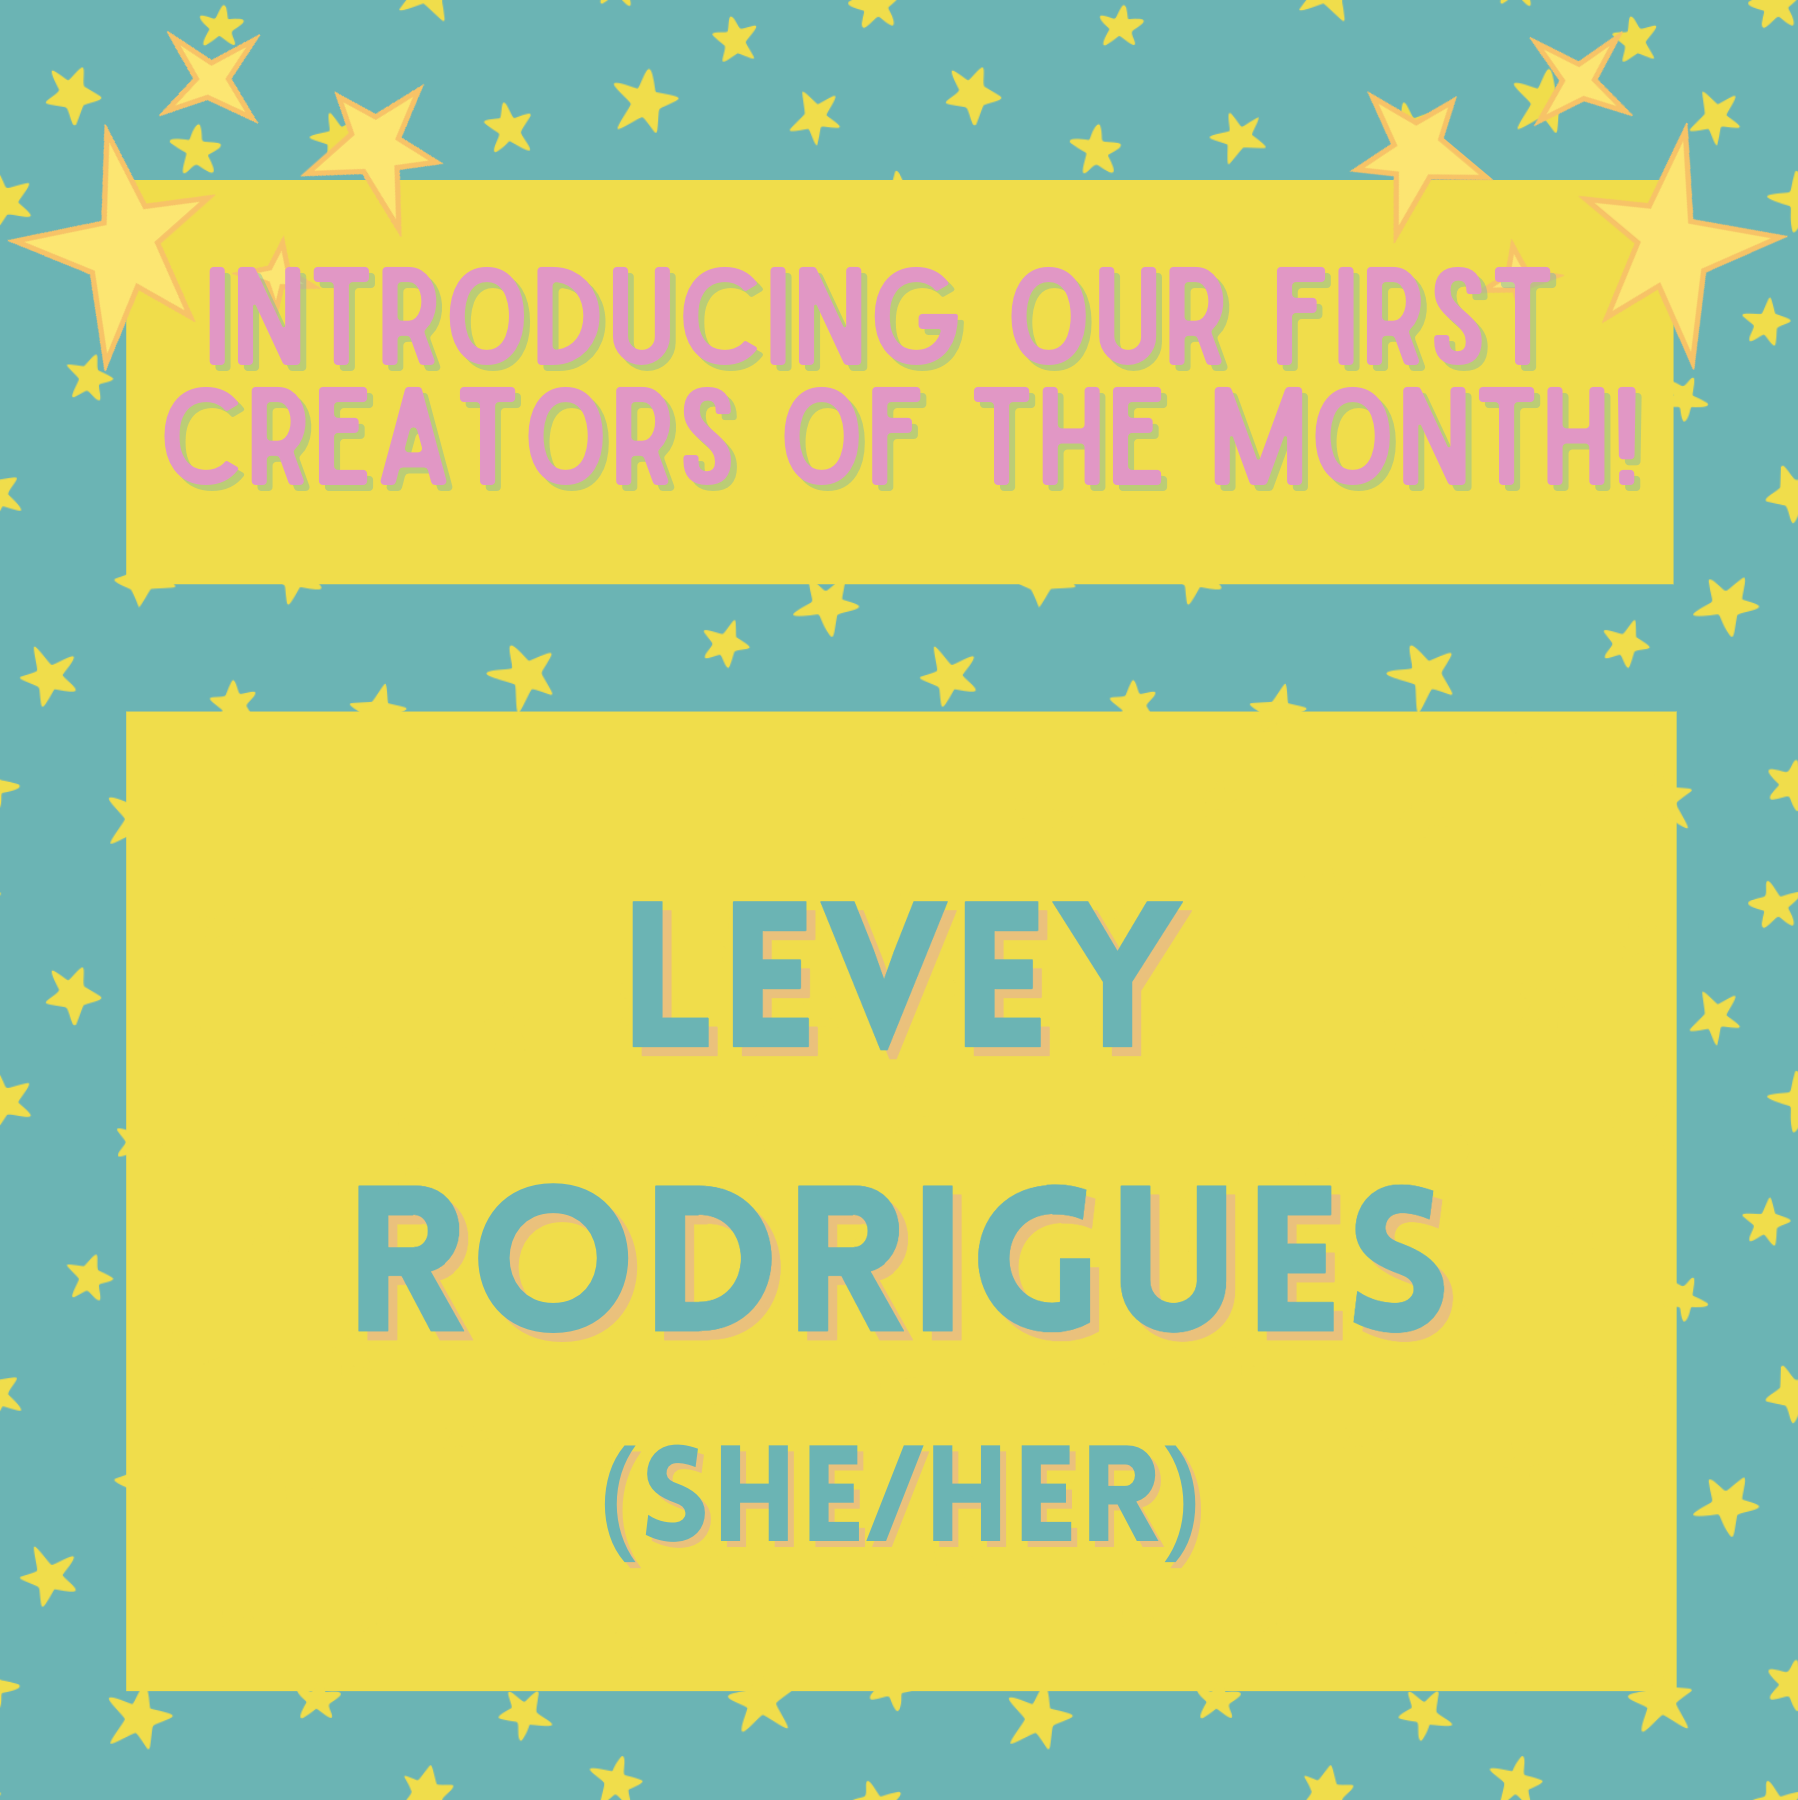 PEACH x QM Arts Society present: Creator of the Month – Levey Rodrigues